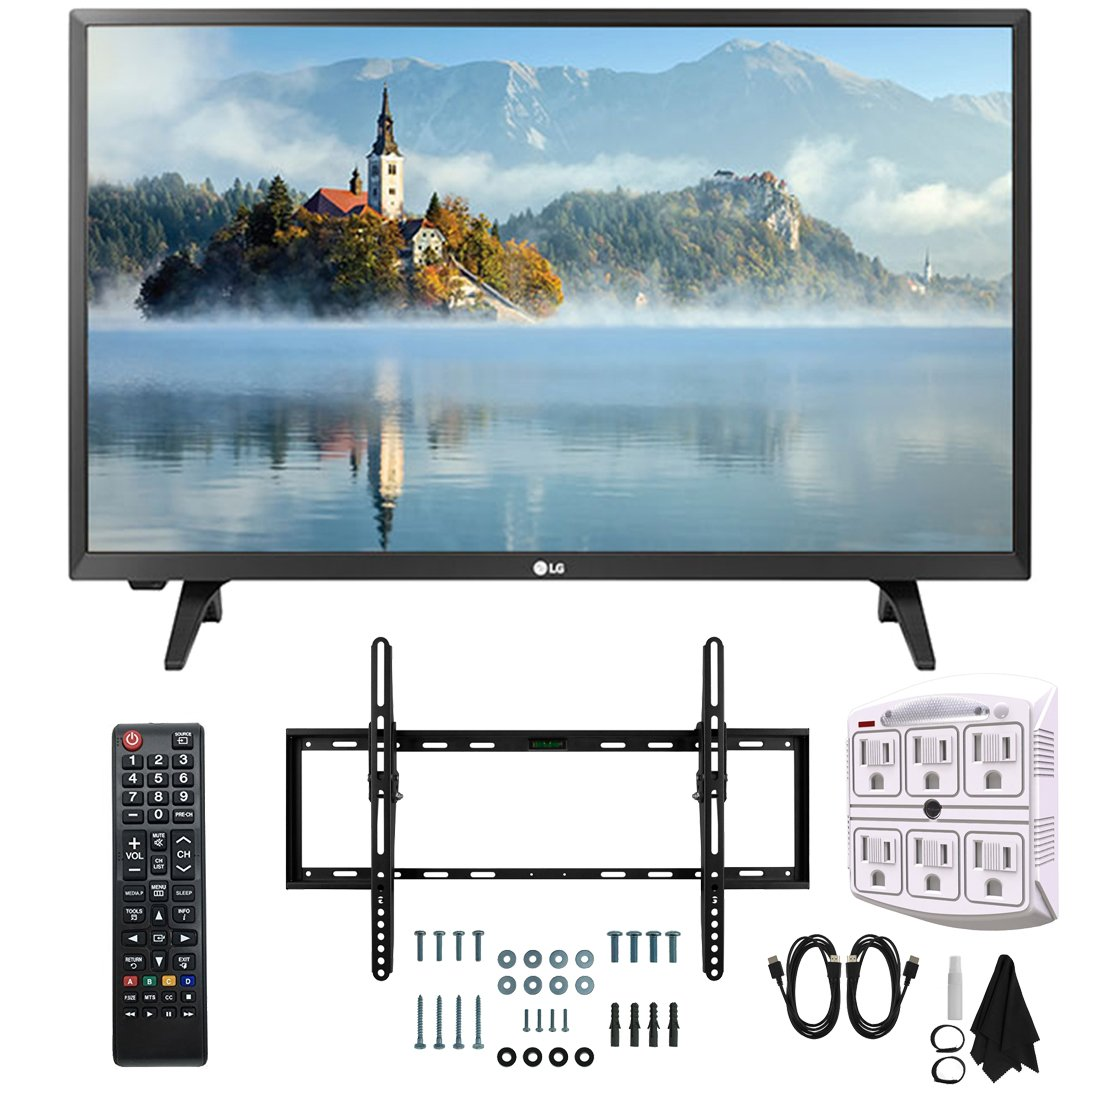 LG 28LJ430B-PU 28'' Class HD 720p LED TV (2017 Model) with Slim Flat Wall Mount Kit and 750 Joule 6-Outlet Surge Adapter Ultimate Bundle by LG